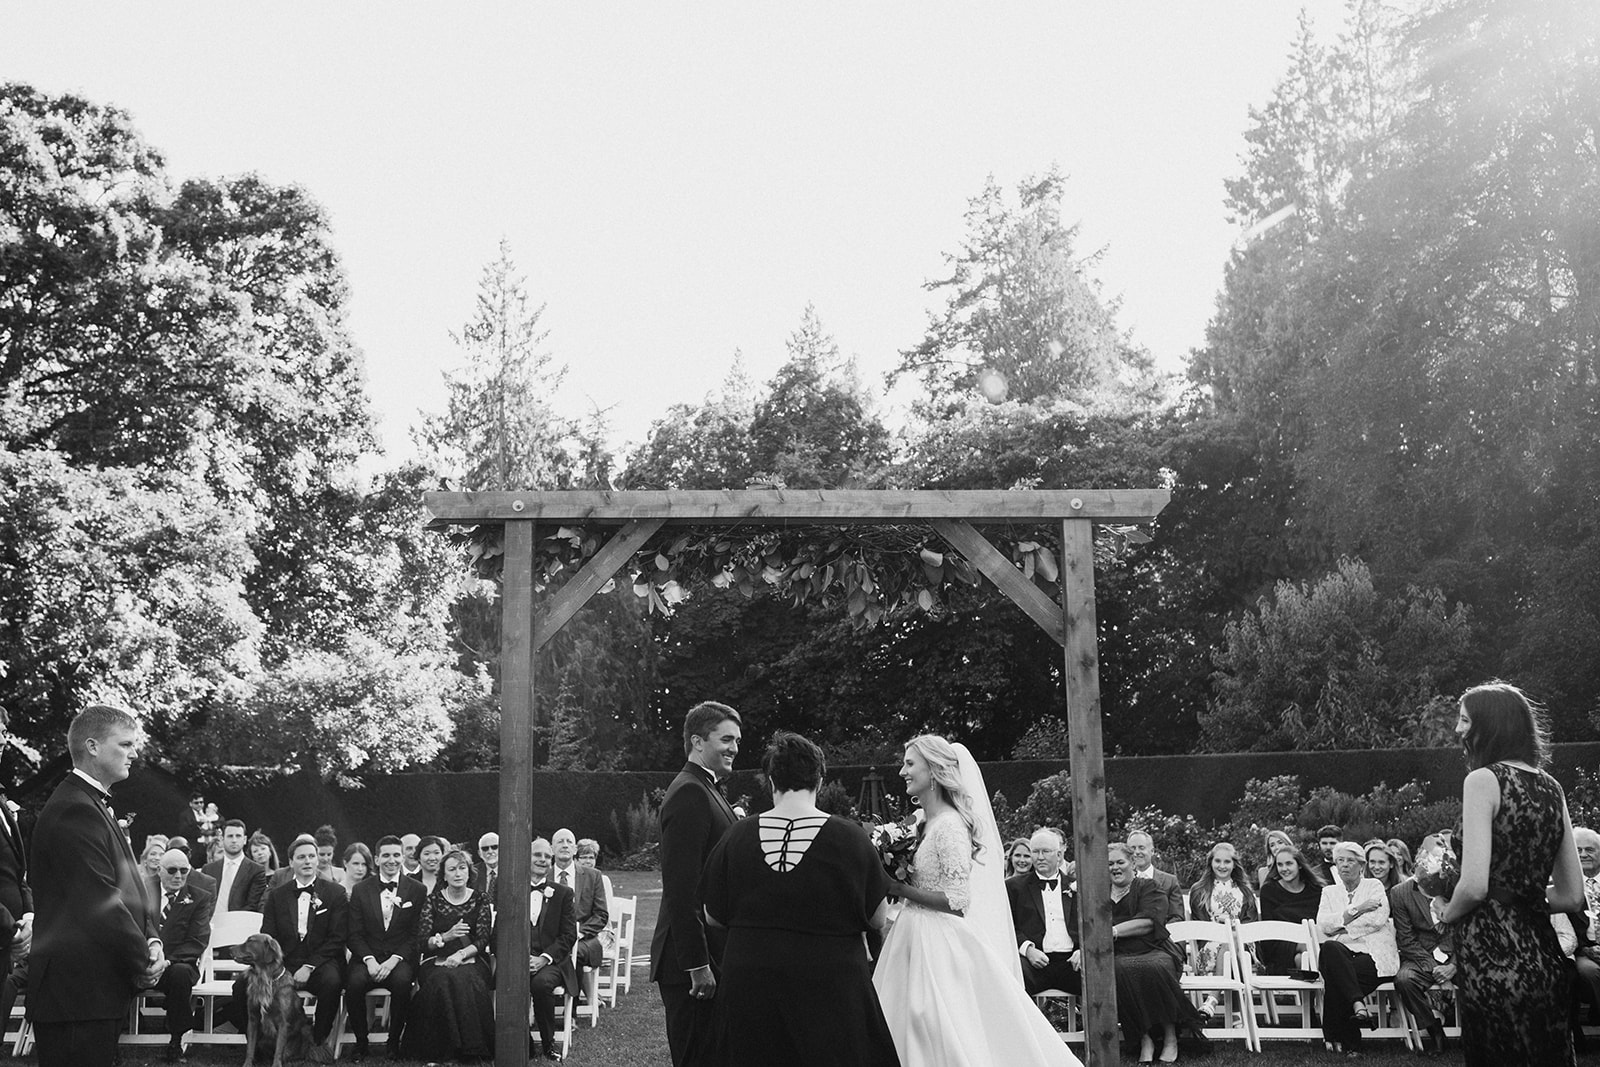 Hatley Castle Wedding - Victoria Wedding Photographer Kim Jay-30.jpg